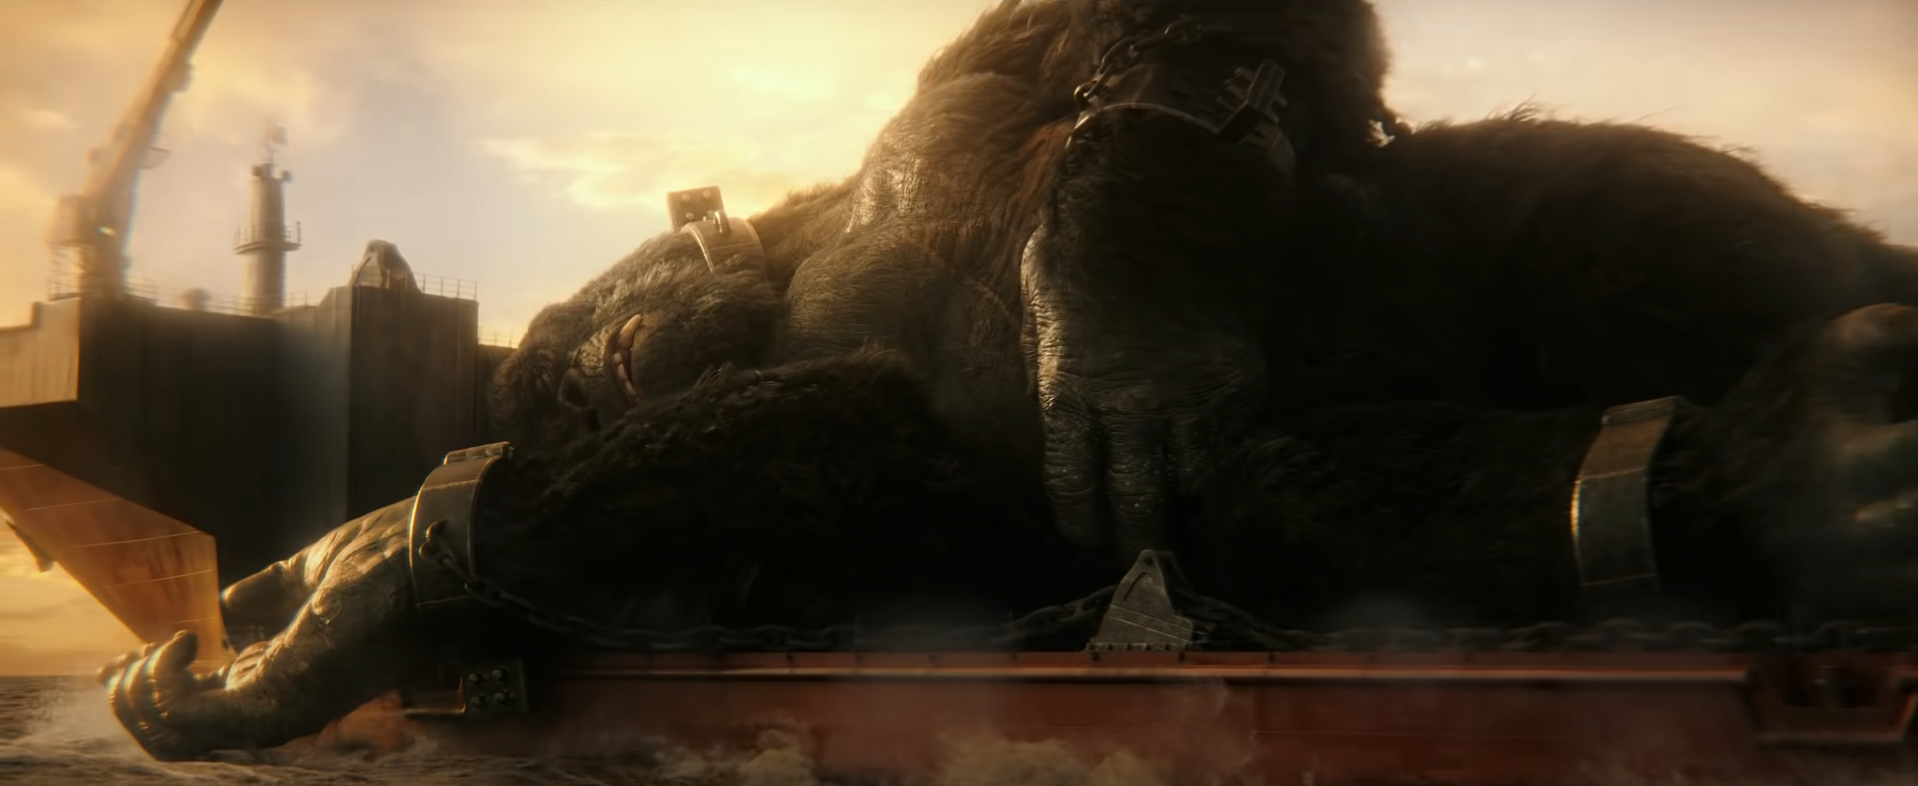 King Kong sleeps on the back of an aircraft carrier, held down by manacles.